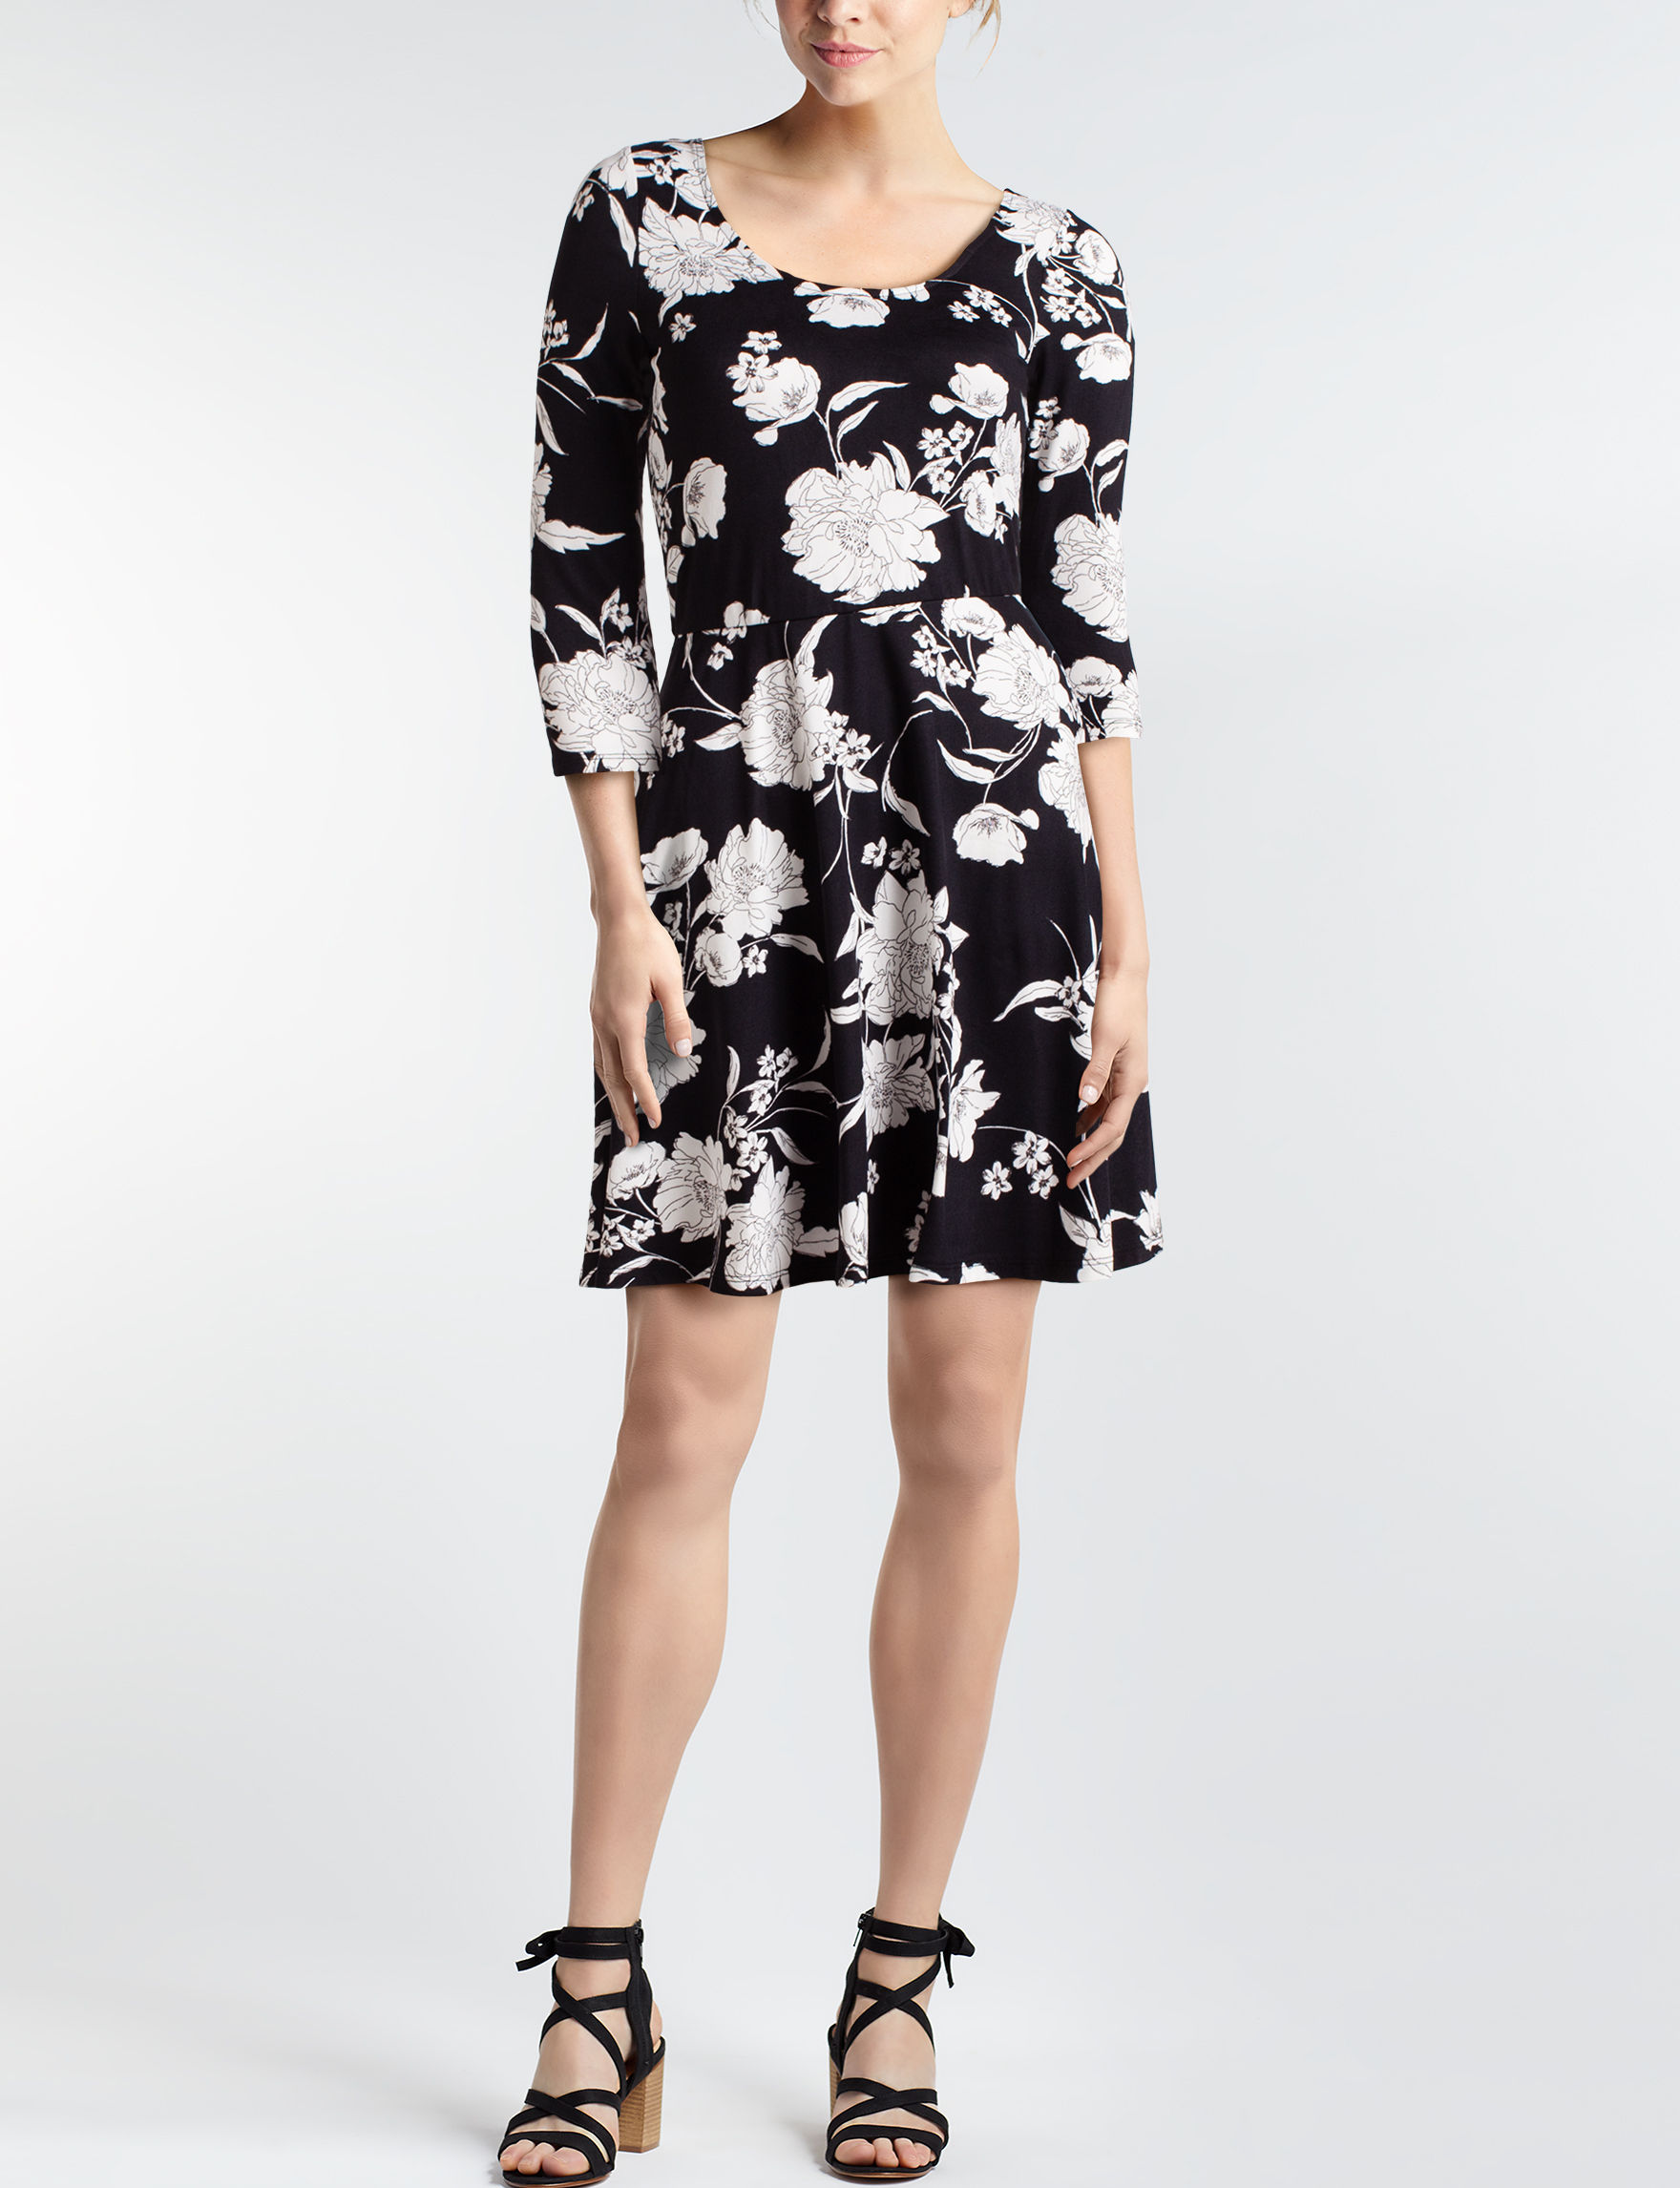 A. Byer Black White Everyday & Casual Fit & Flare Dresses